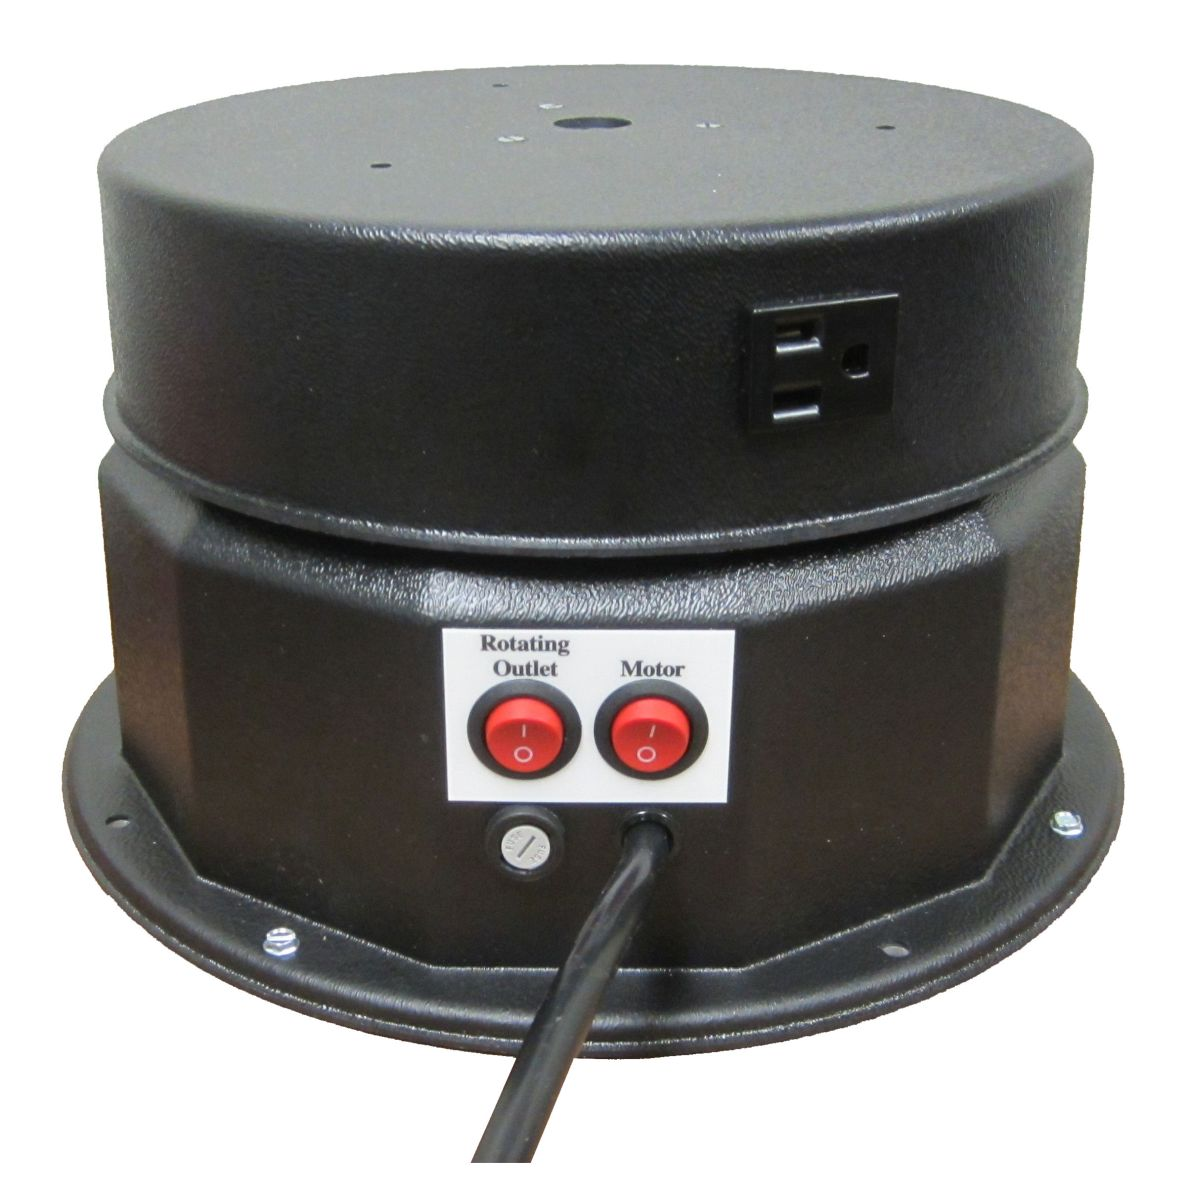 Motorized Turntable - 200 Pound Cap. - Electric Outlet